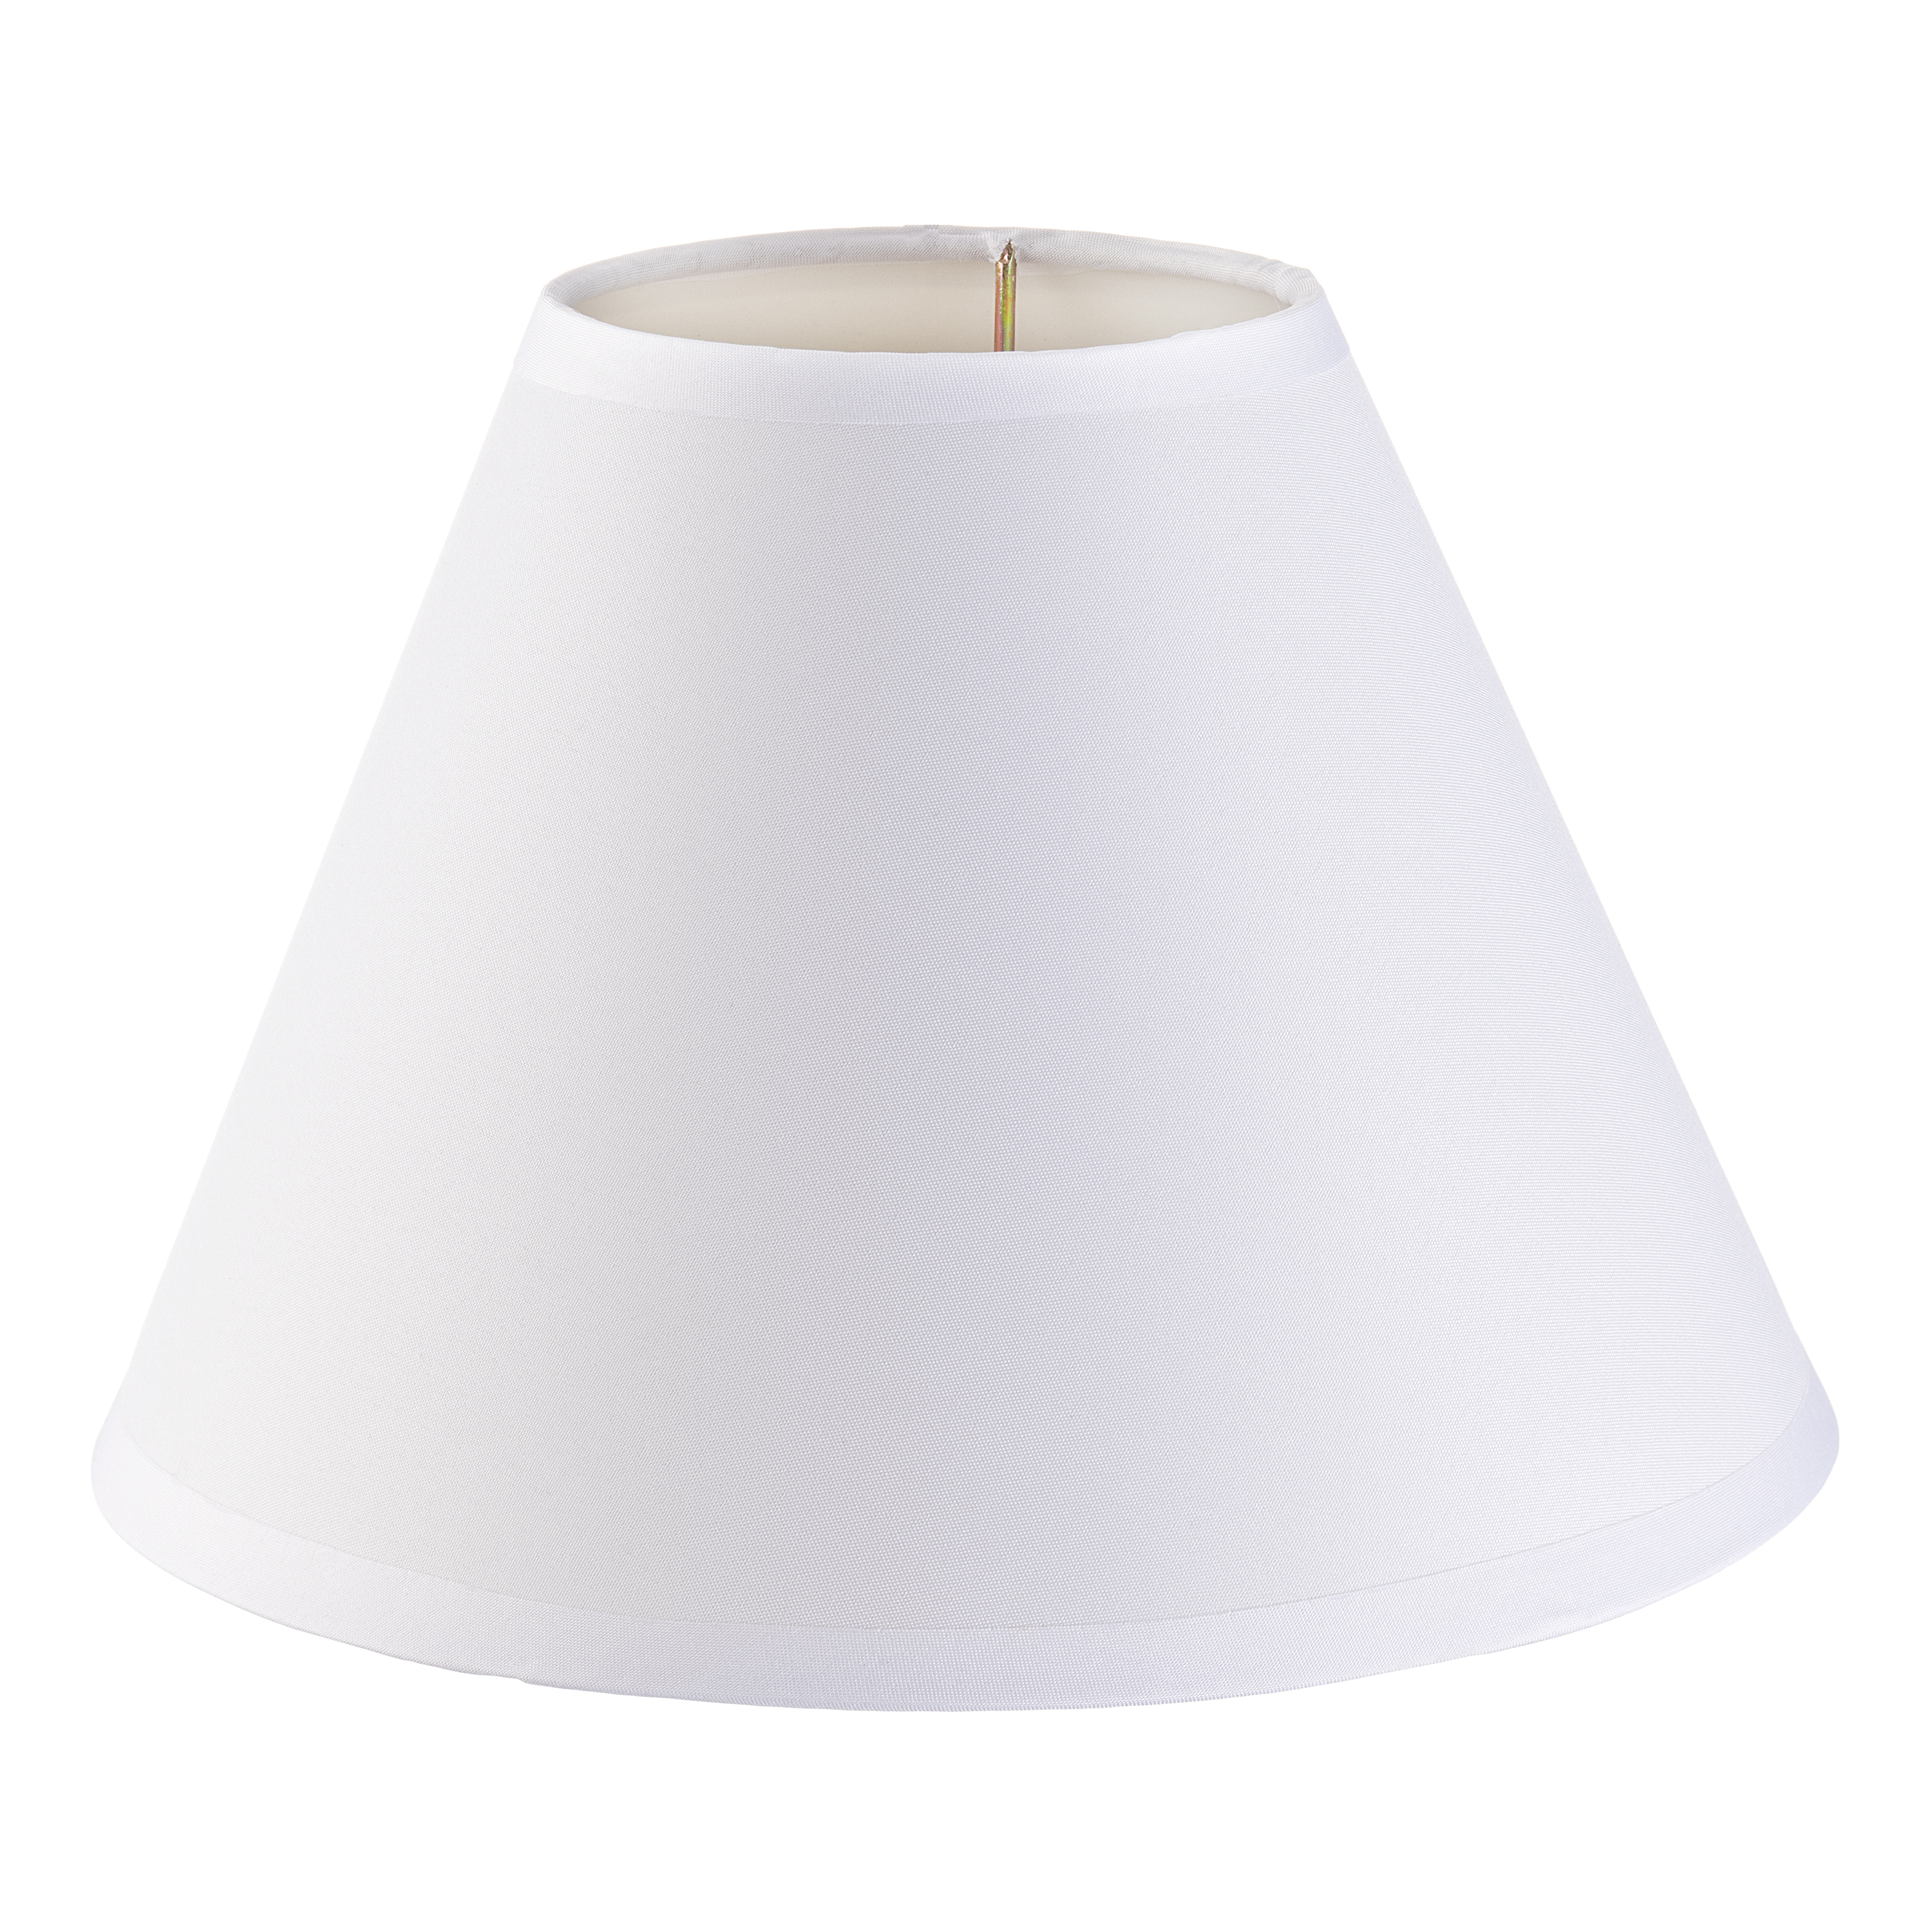 Darice lamp shade plain white small 4 x 9 x 6 5 inches walmart com